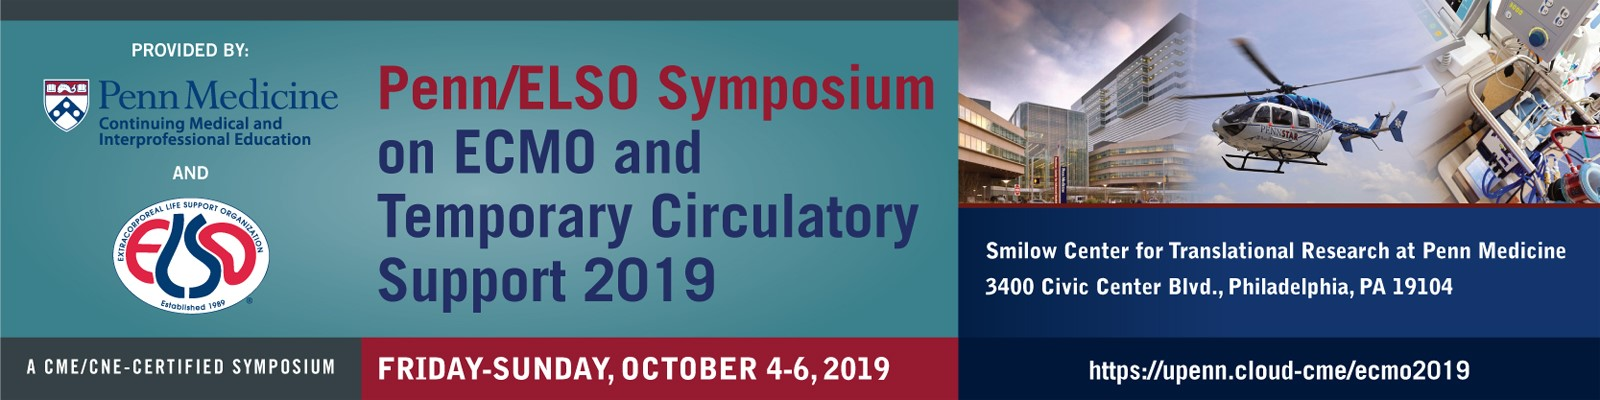 Penn/ELSO Symposium on ECMO and Temporary Circulatory Support Banner